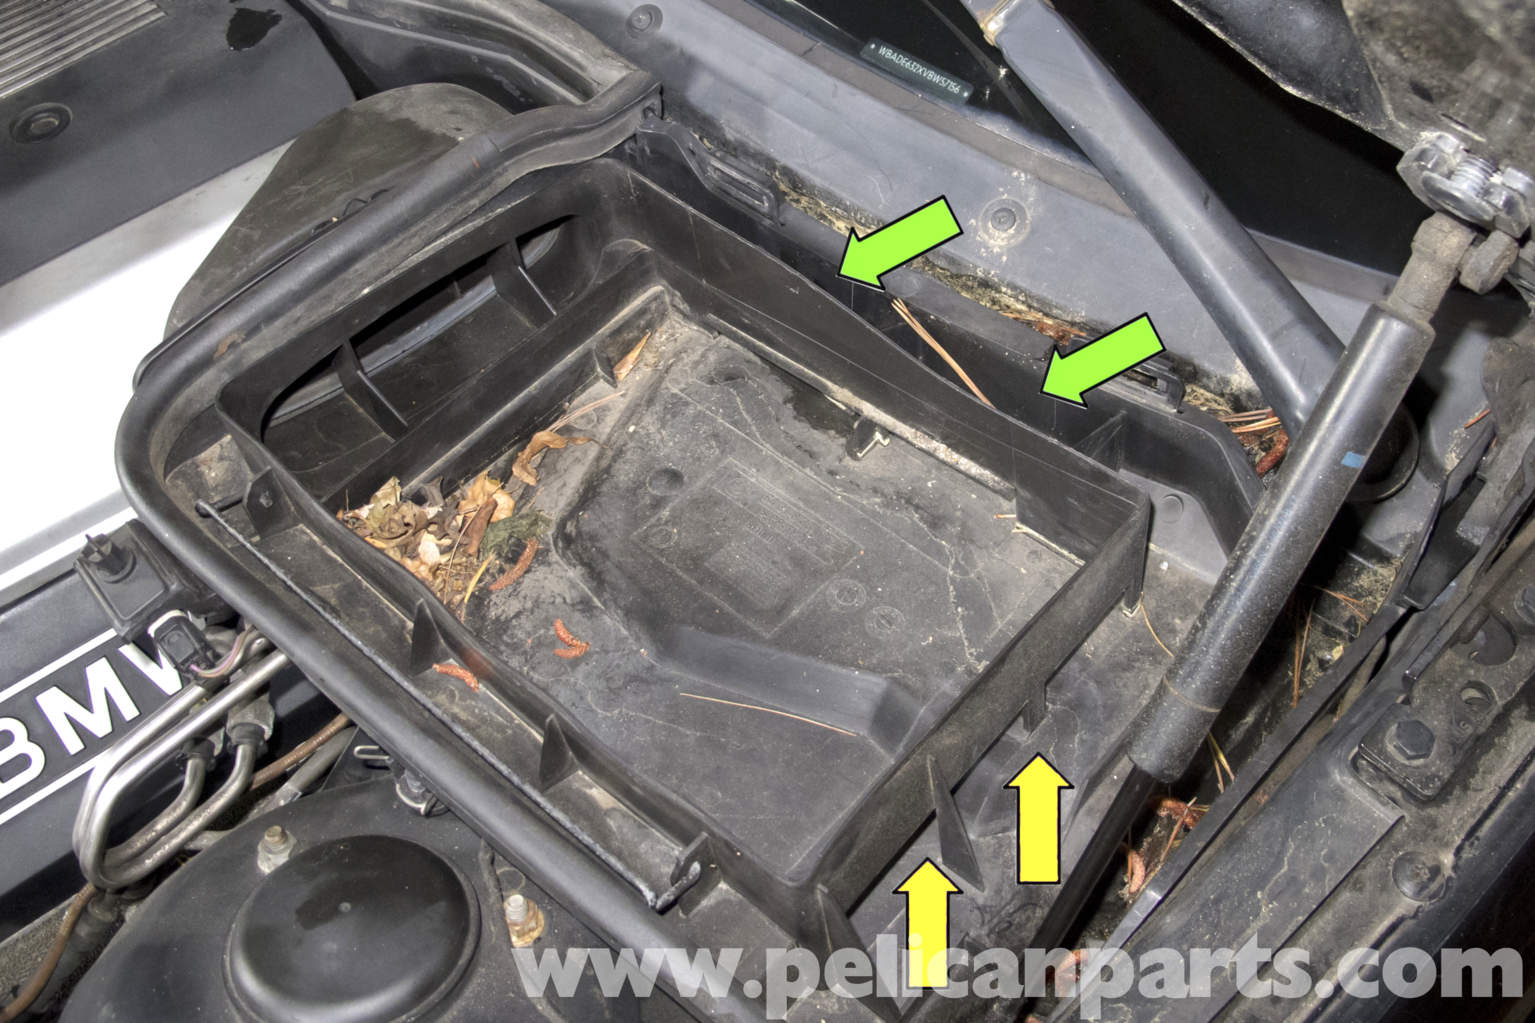 Bmw cabin filter replacement bmw free engine image for user manual download